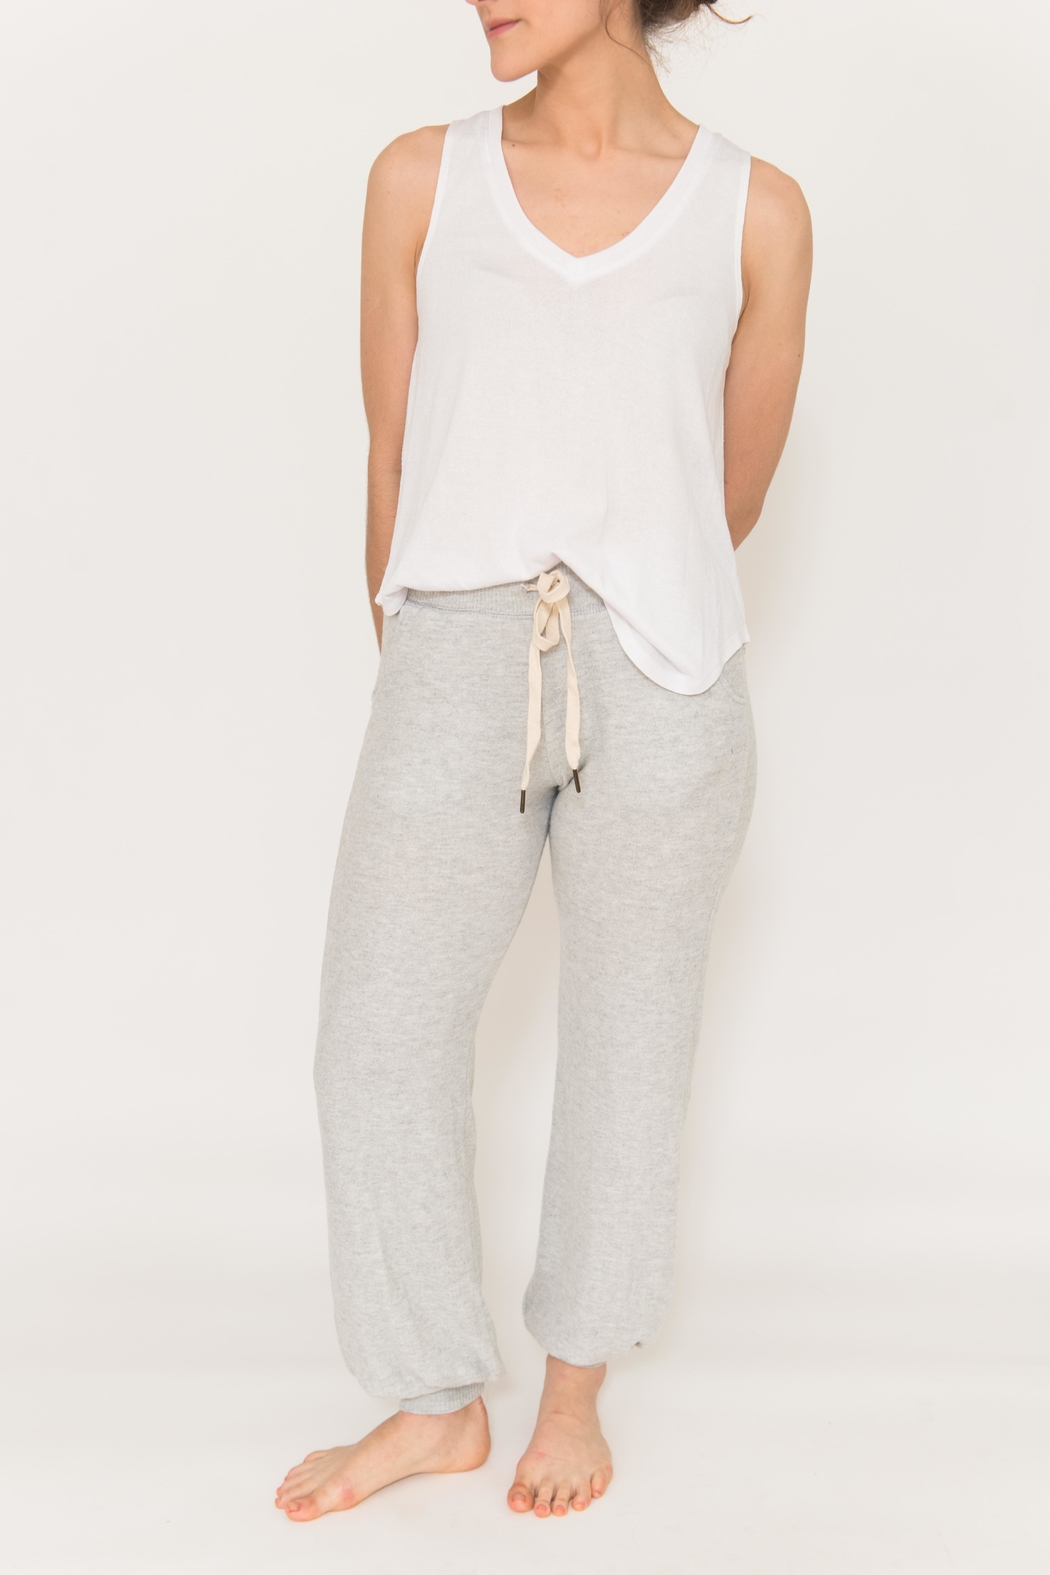 Project Social T Etty Lounge Pant - Main Image